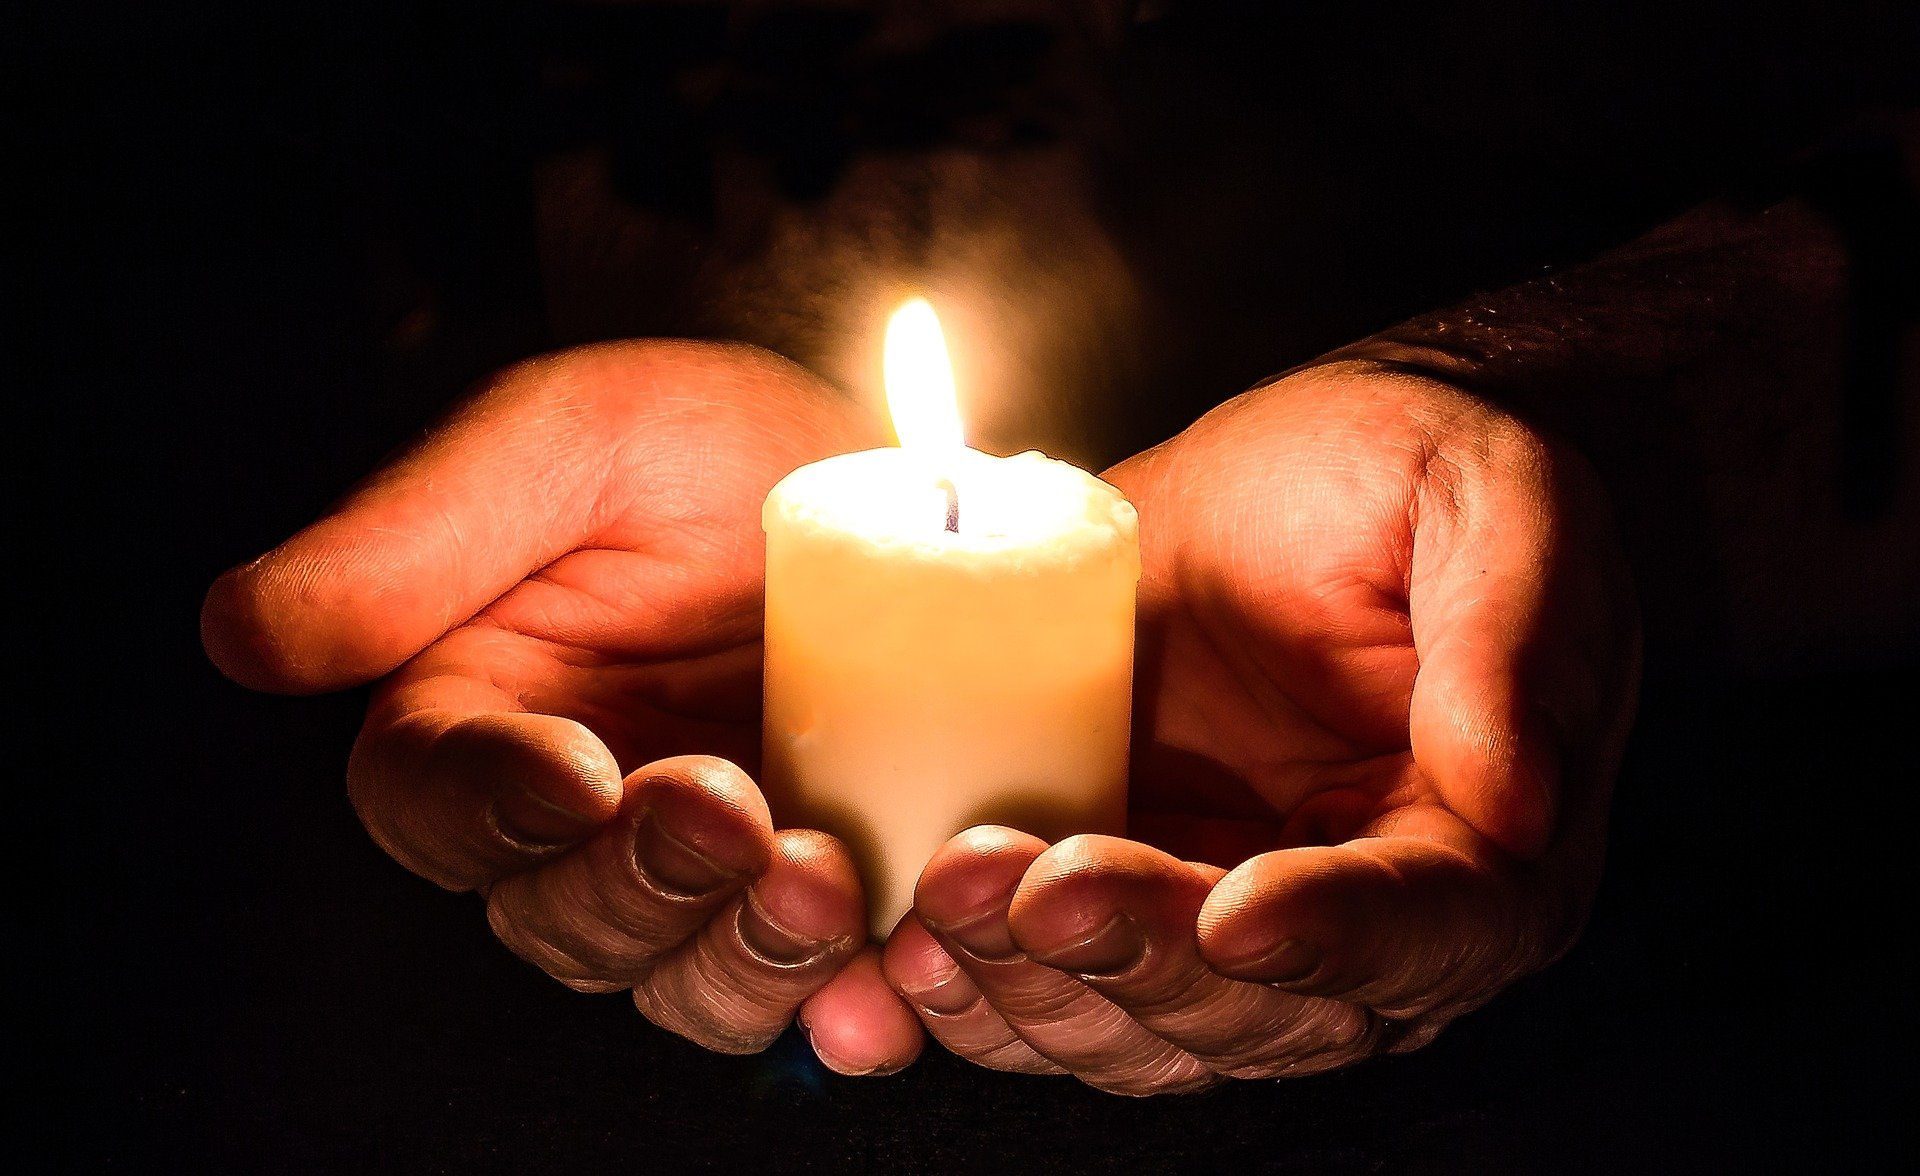 Canada Designates March 11 as National Observance Day for COVID-19 Victims